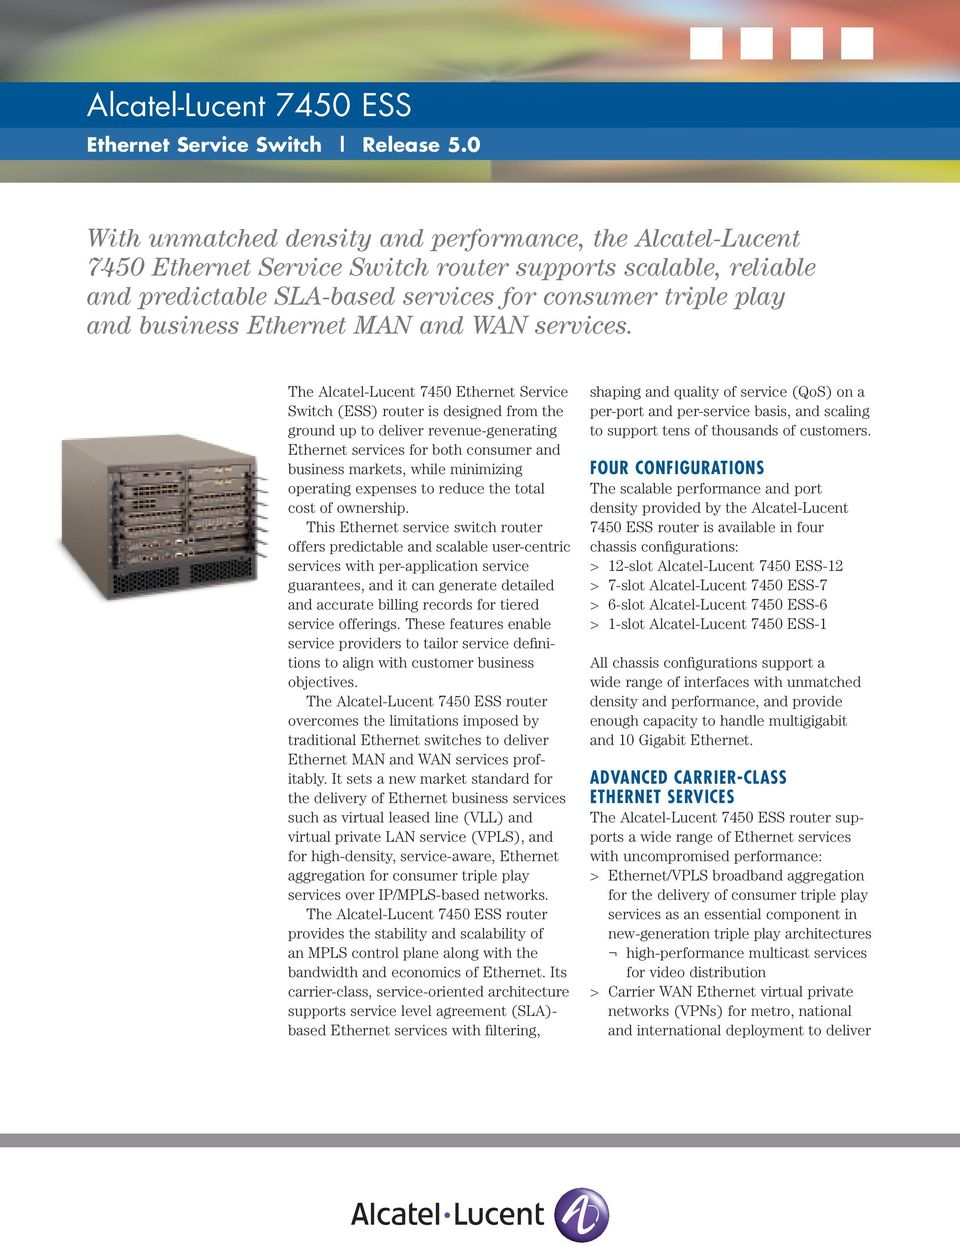 Alcatel-Lucent 7450 ESS - PDF